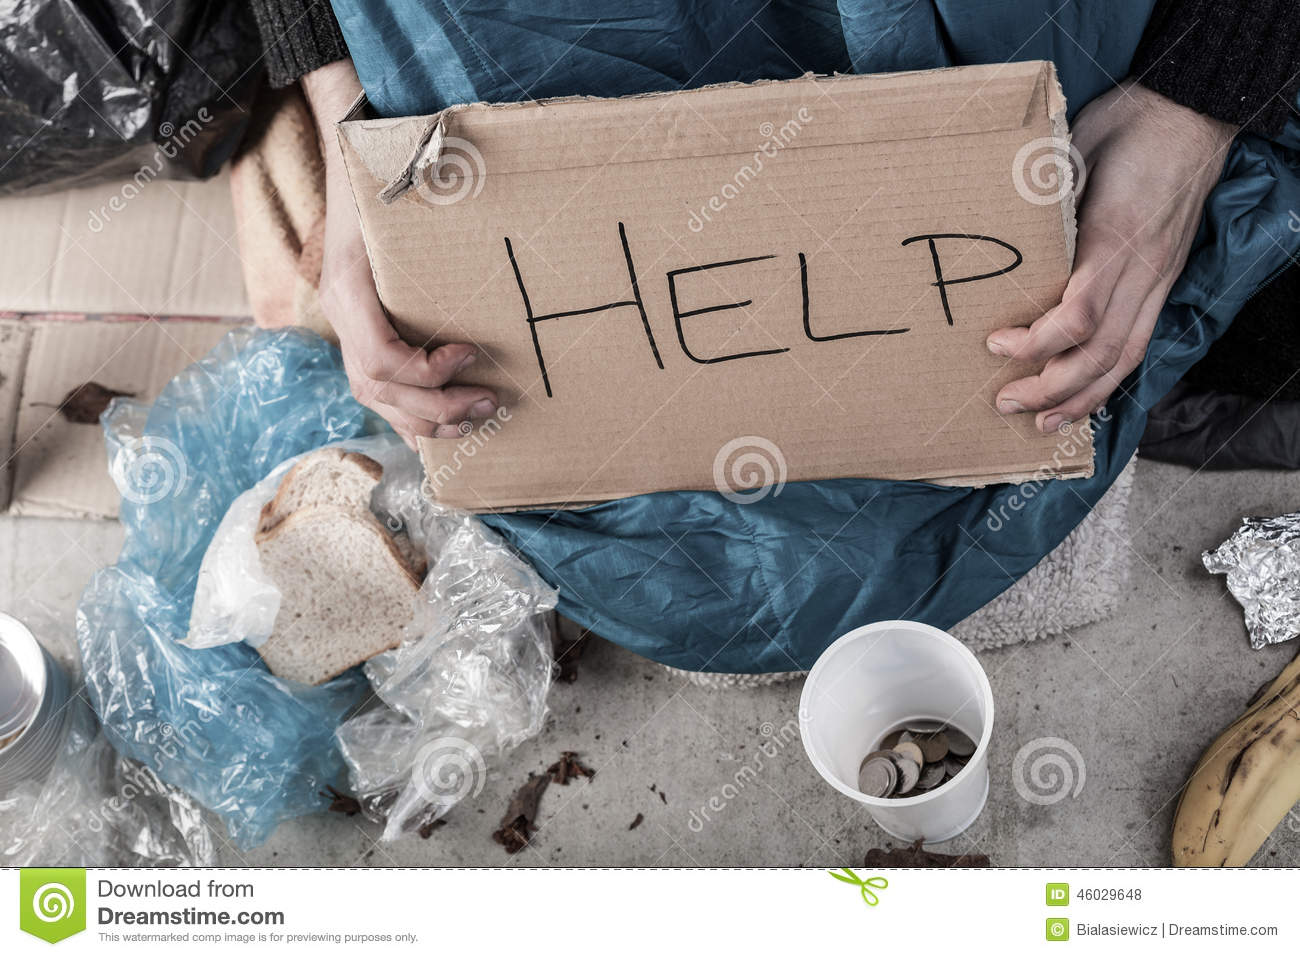 A Homeless Man Asking For Money Stock Photo - Image of